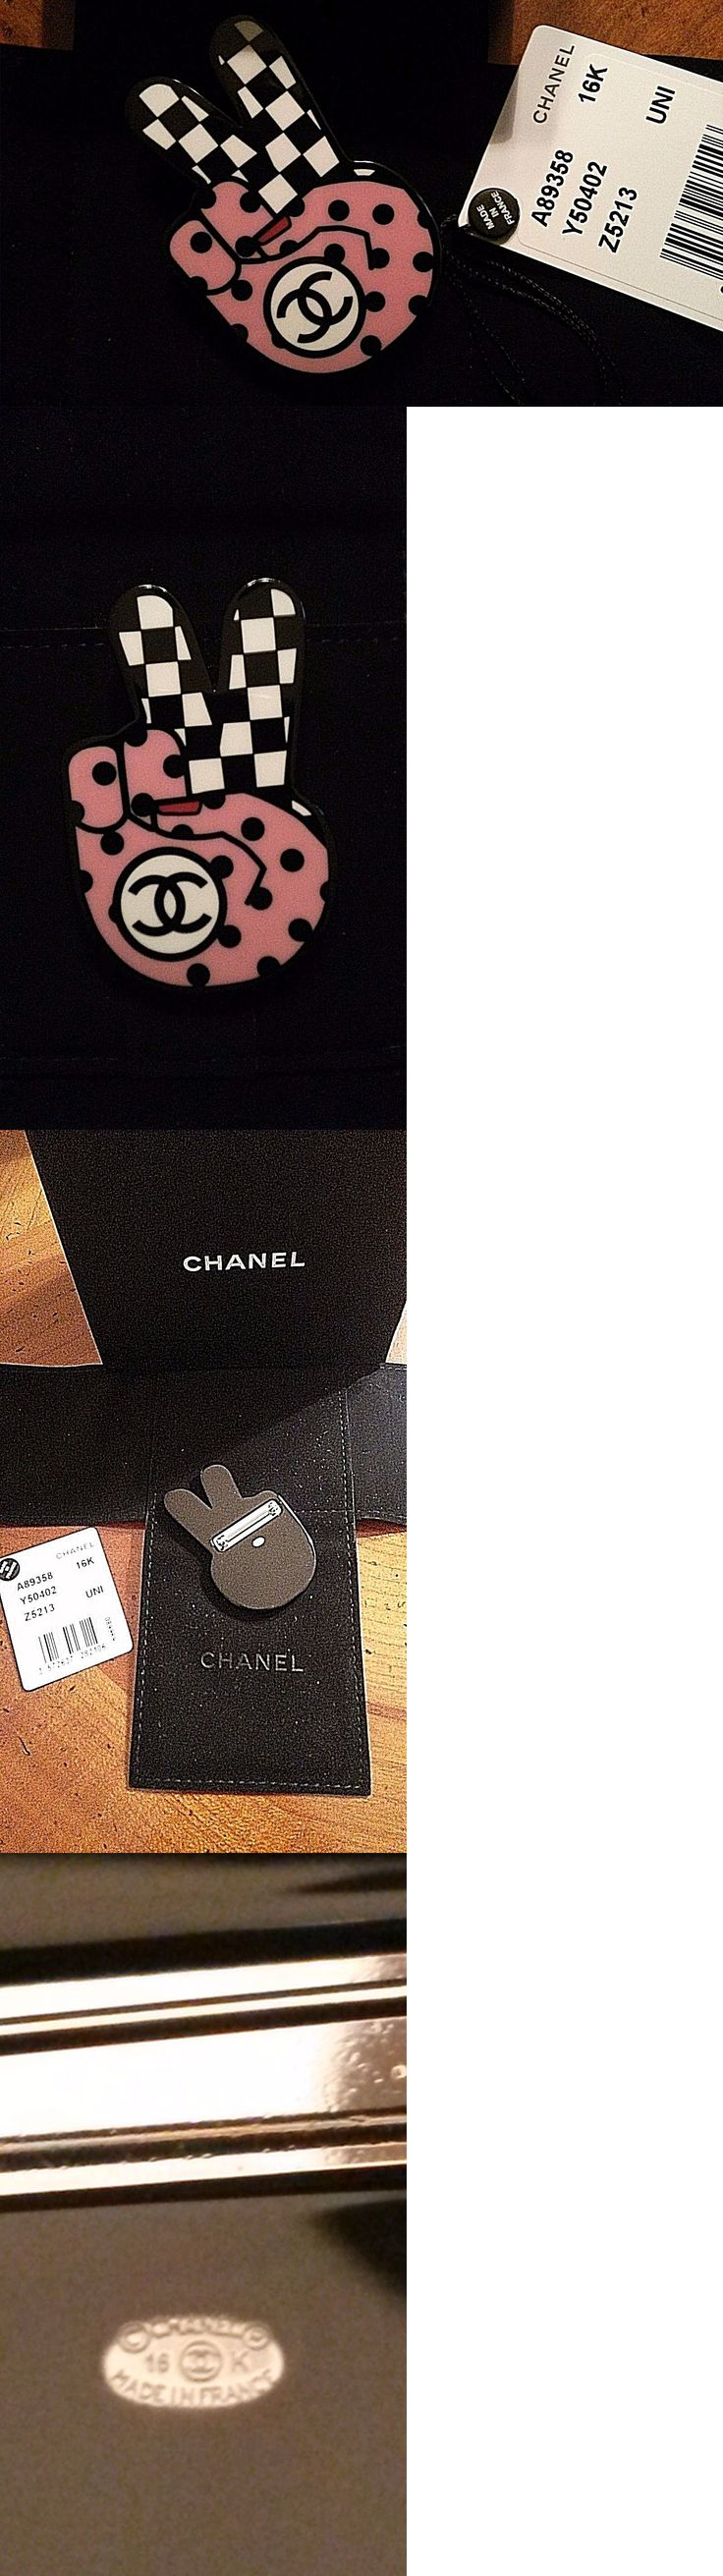 Pins and Brooches 50677: Nwt 2016 2017 Chanel Brooch Pin Sold Out And Scarce Emoji Victory Peace Sign -> BUY IT NOW ONLY: $599 on eBay!